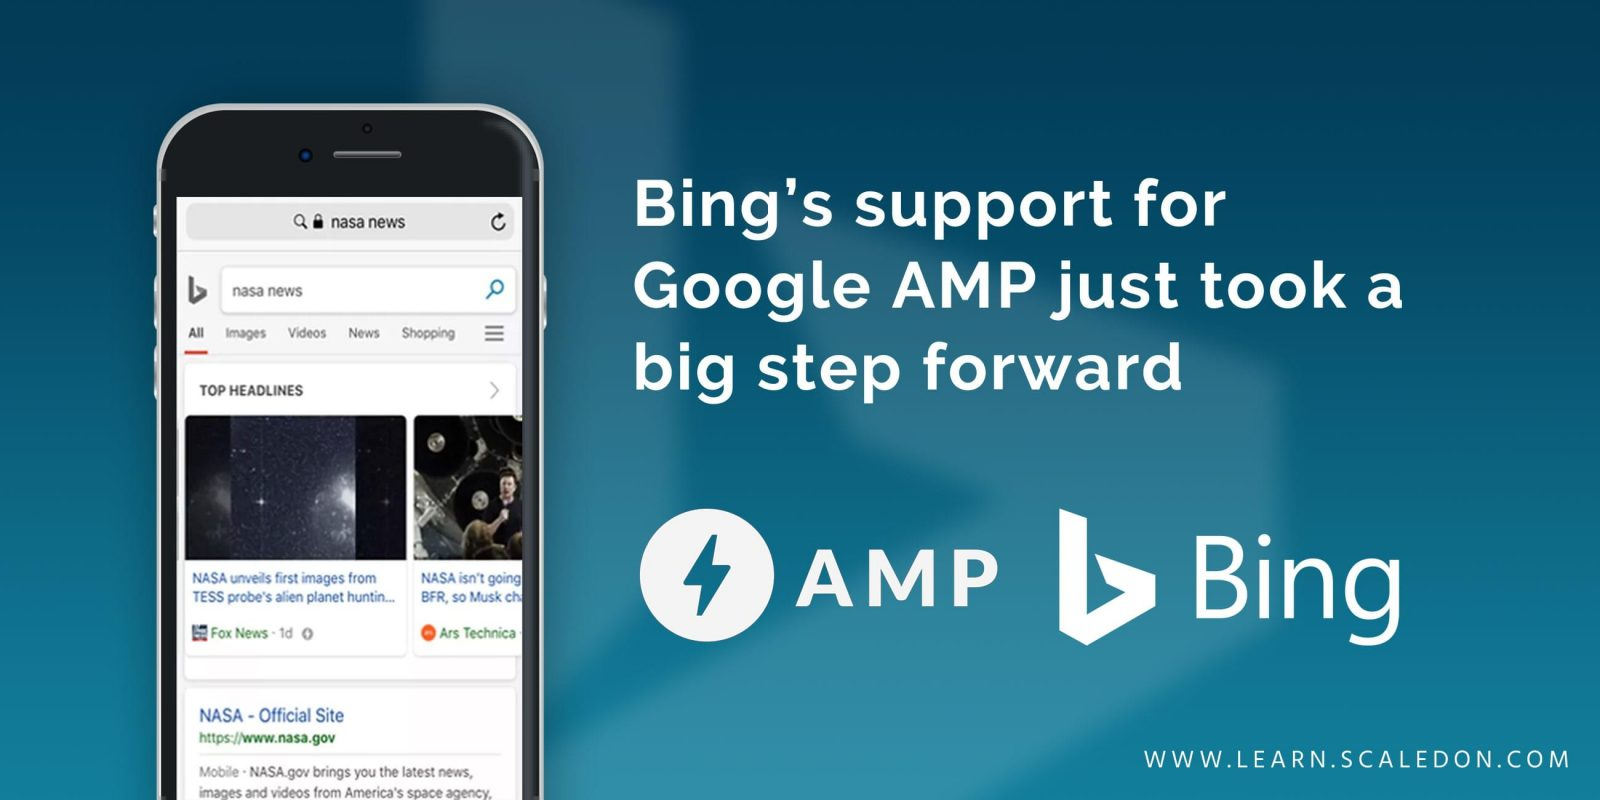 Bings support for Google AMP just took a big step forward